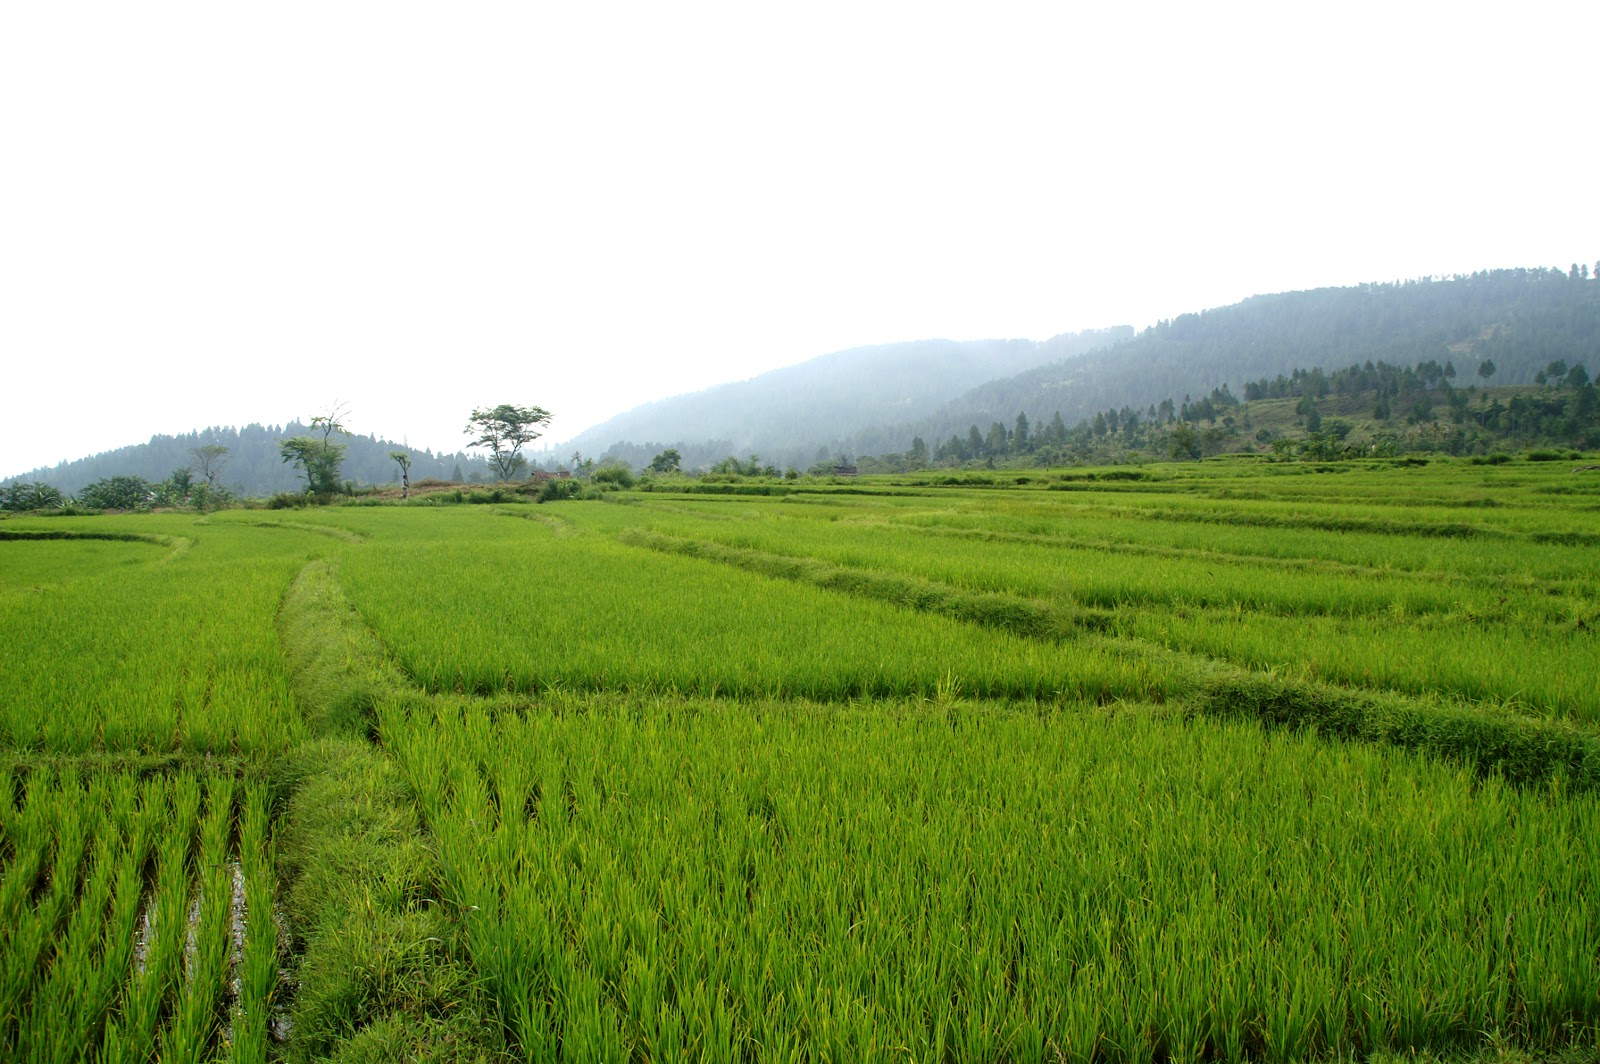 rice fields - photo #24